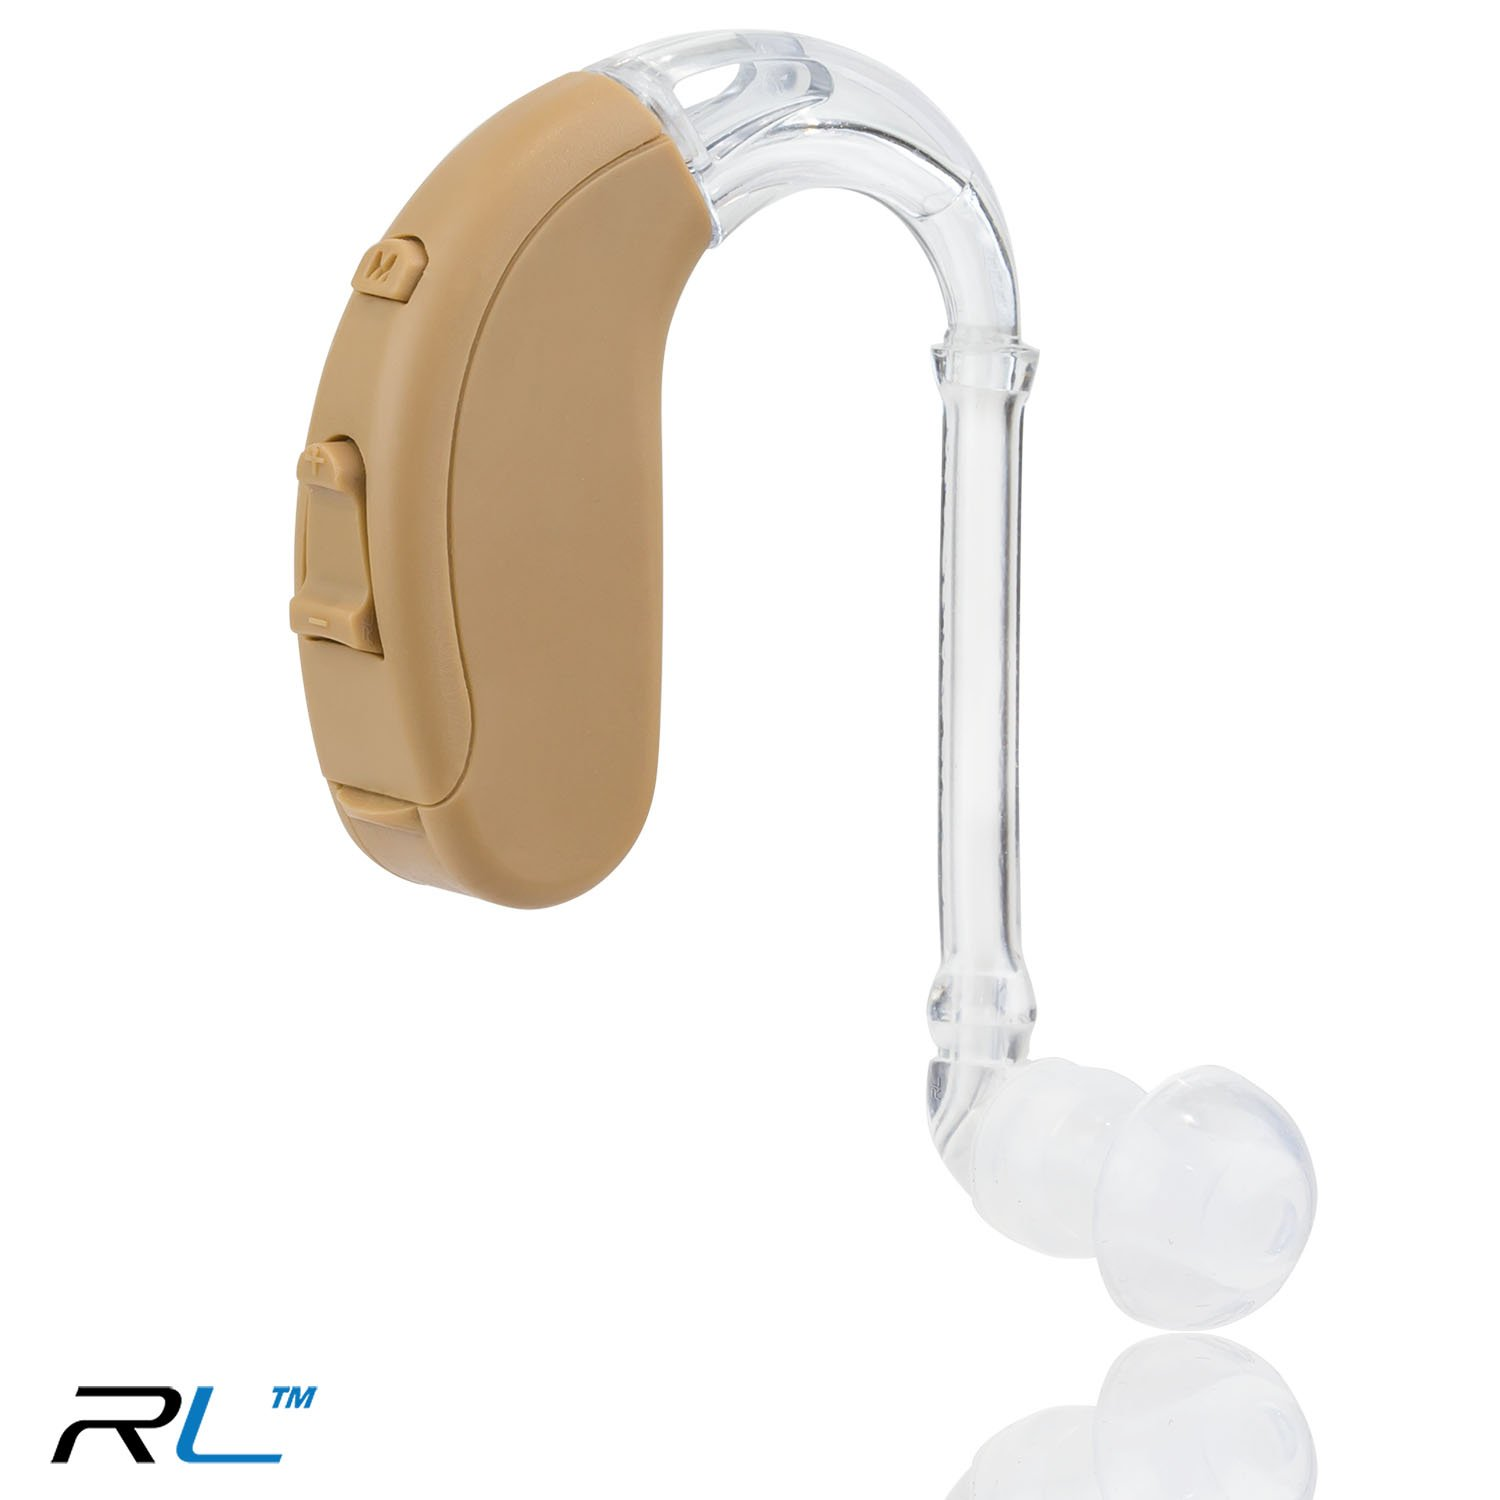 R&L Hearing Amplifiers 18A, Digital Sound Amplifer Device PSAP, Aid for Adults and Seniors, 10 Days of Battery Life (Beige)